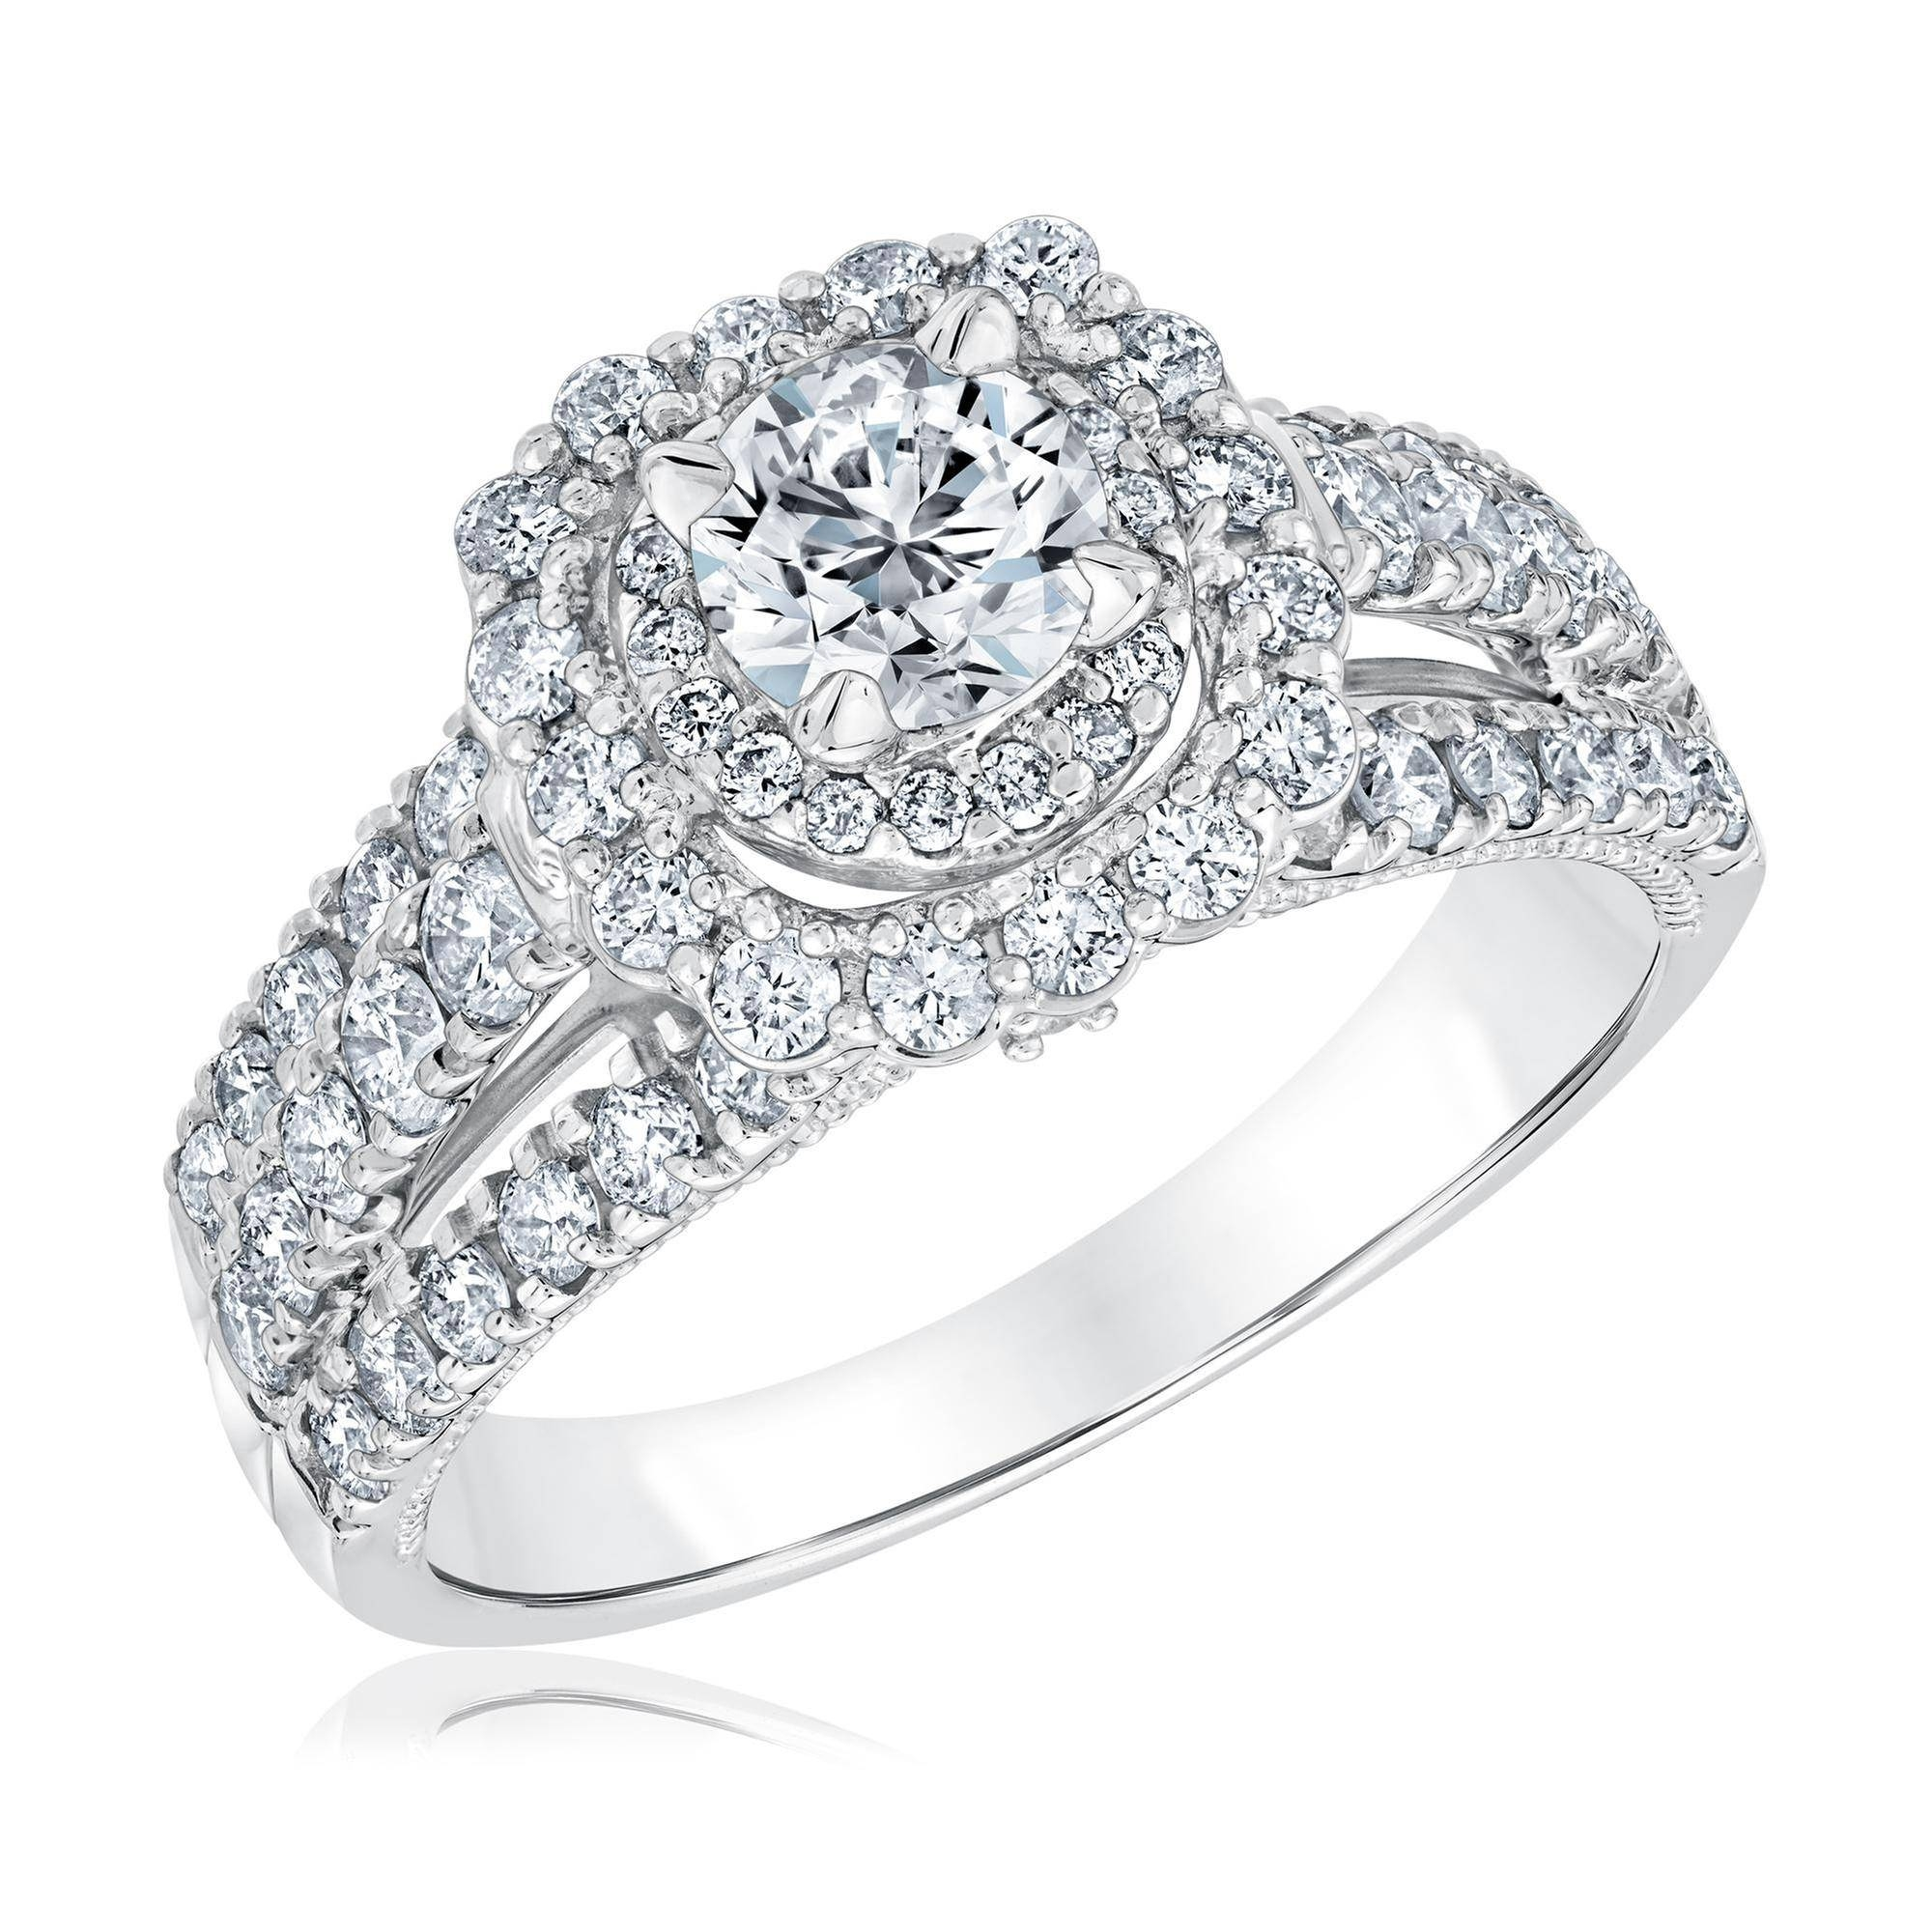 Engagement Rings Page 1 | Reeds Jewelers With Regard To Recent Wedding And Anniversary Rings (View 12 of 25)